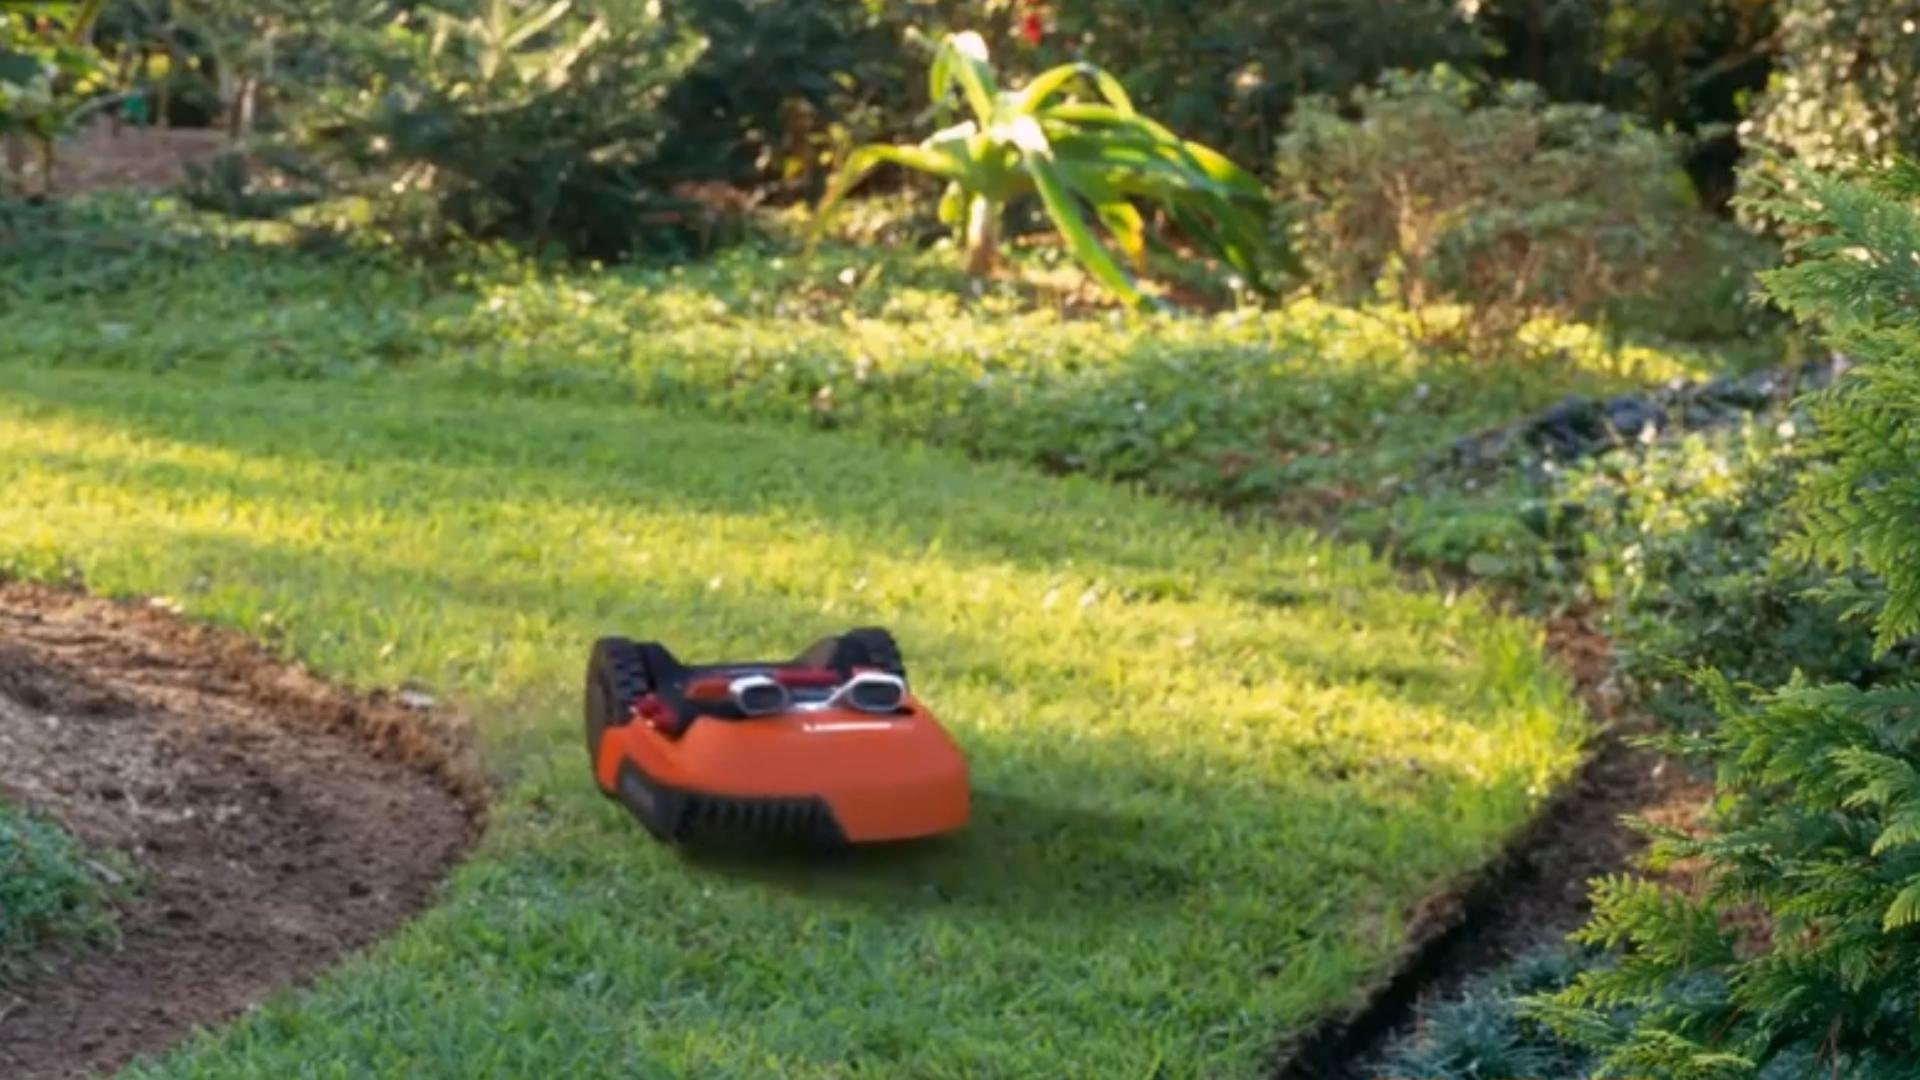 This little bot is basically a Rumba for your lawn